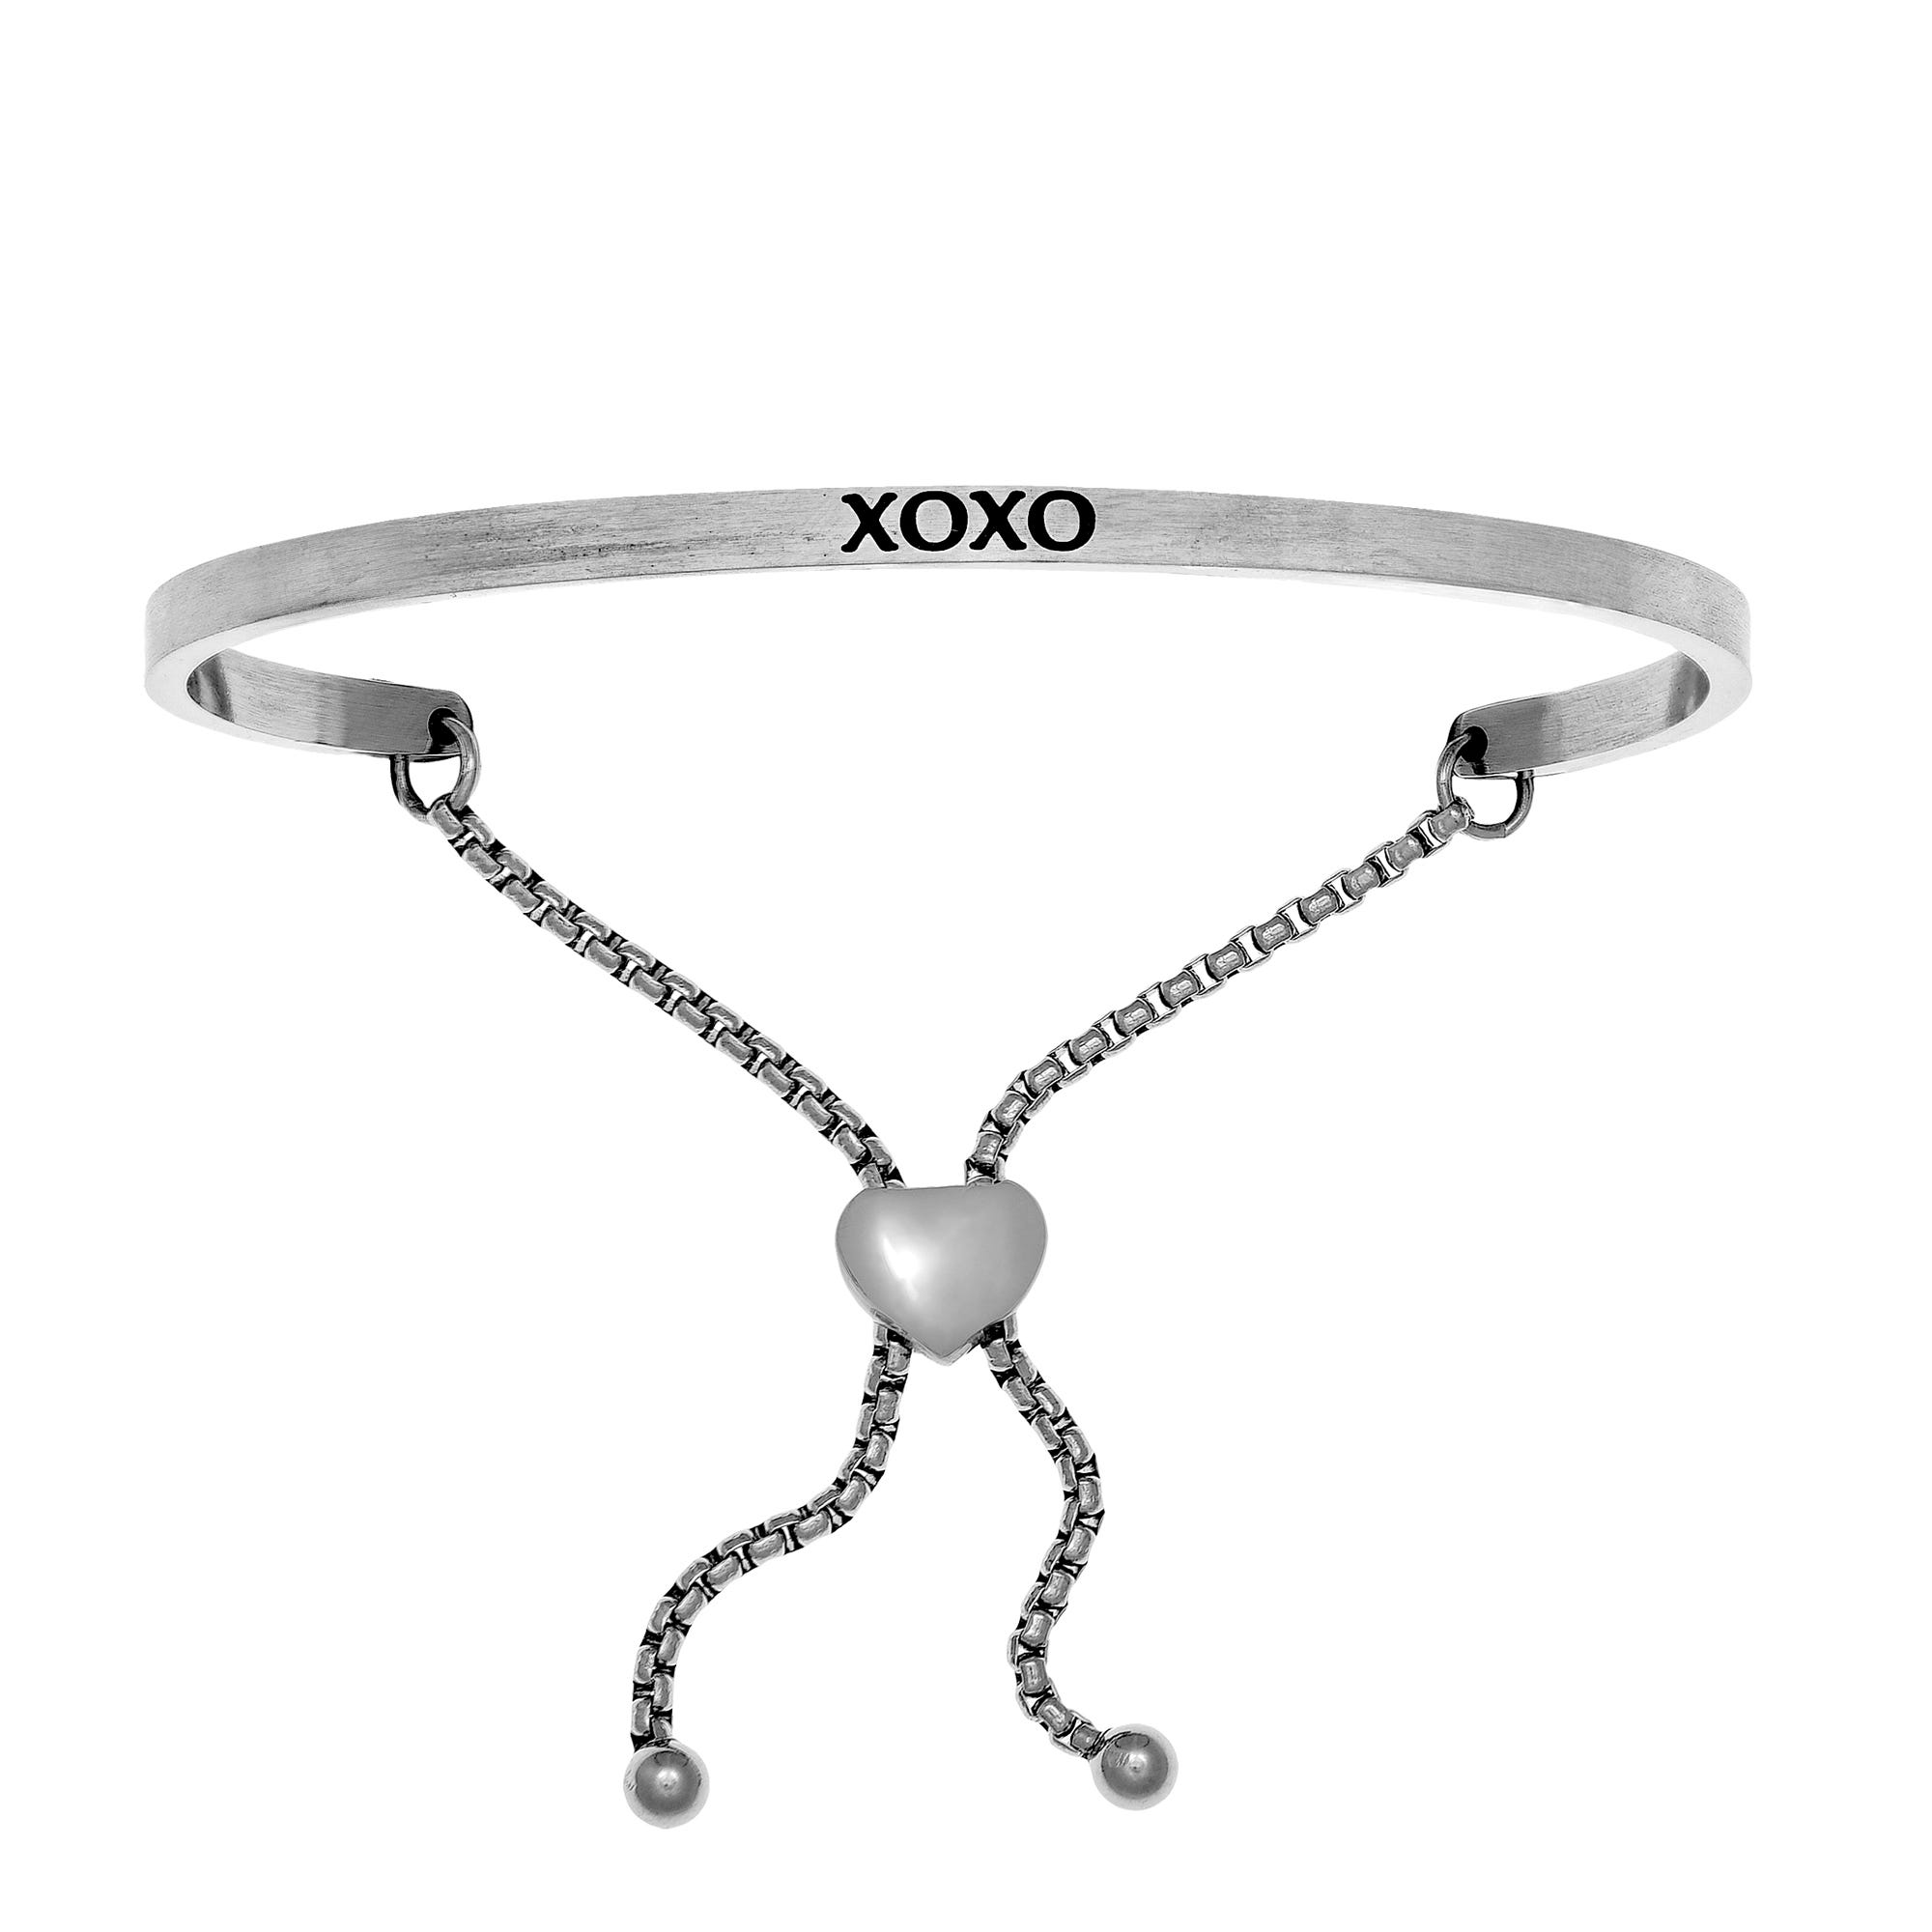 XOXO. Intuitions Bolo Bracelet in White Stainless Steel